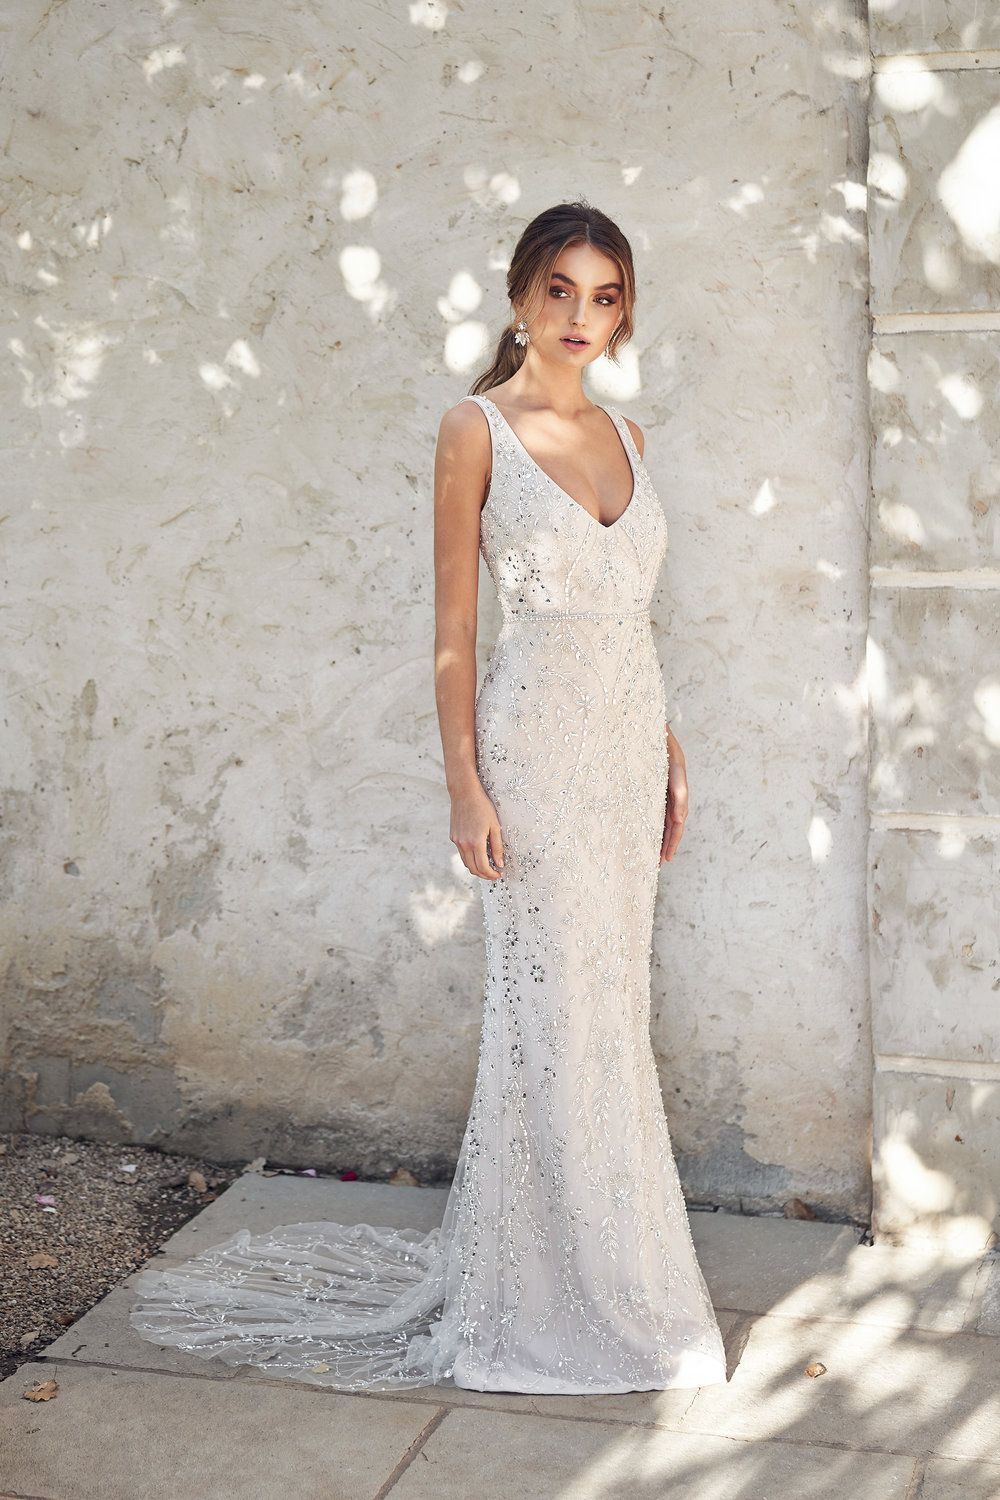 Sleeveless V Neckline Sheath Wedding Dress With Beading From Head To Toe Perfect For A Beach Wed In 2020 Stunning Wedding Dresses Wedding Dresses Anna Campbell Bridal